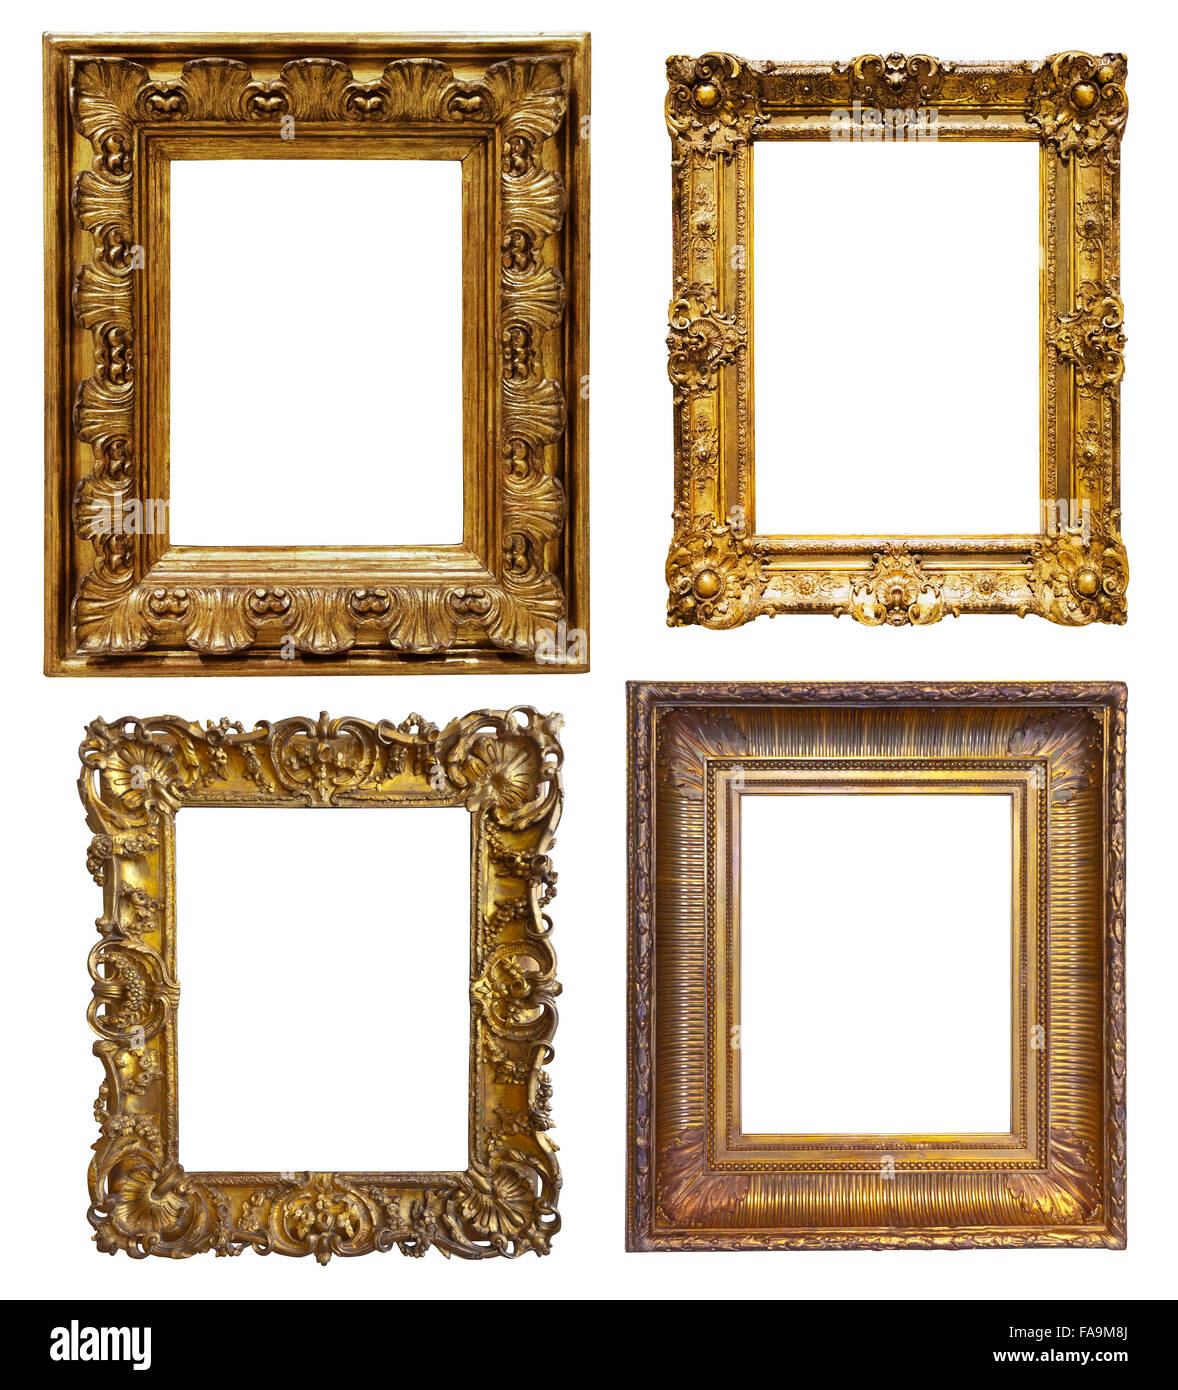 a9404ae9b0e Set Of Old Gold Frames Isolated Over White Background May Be Used